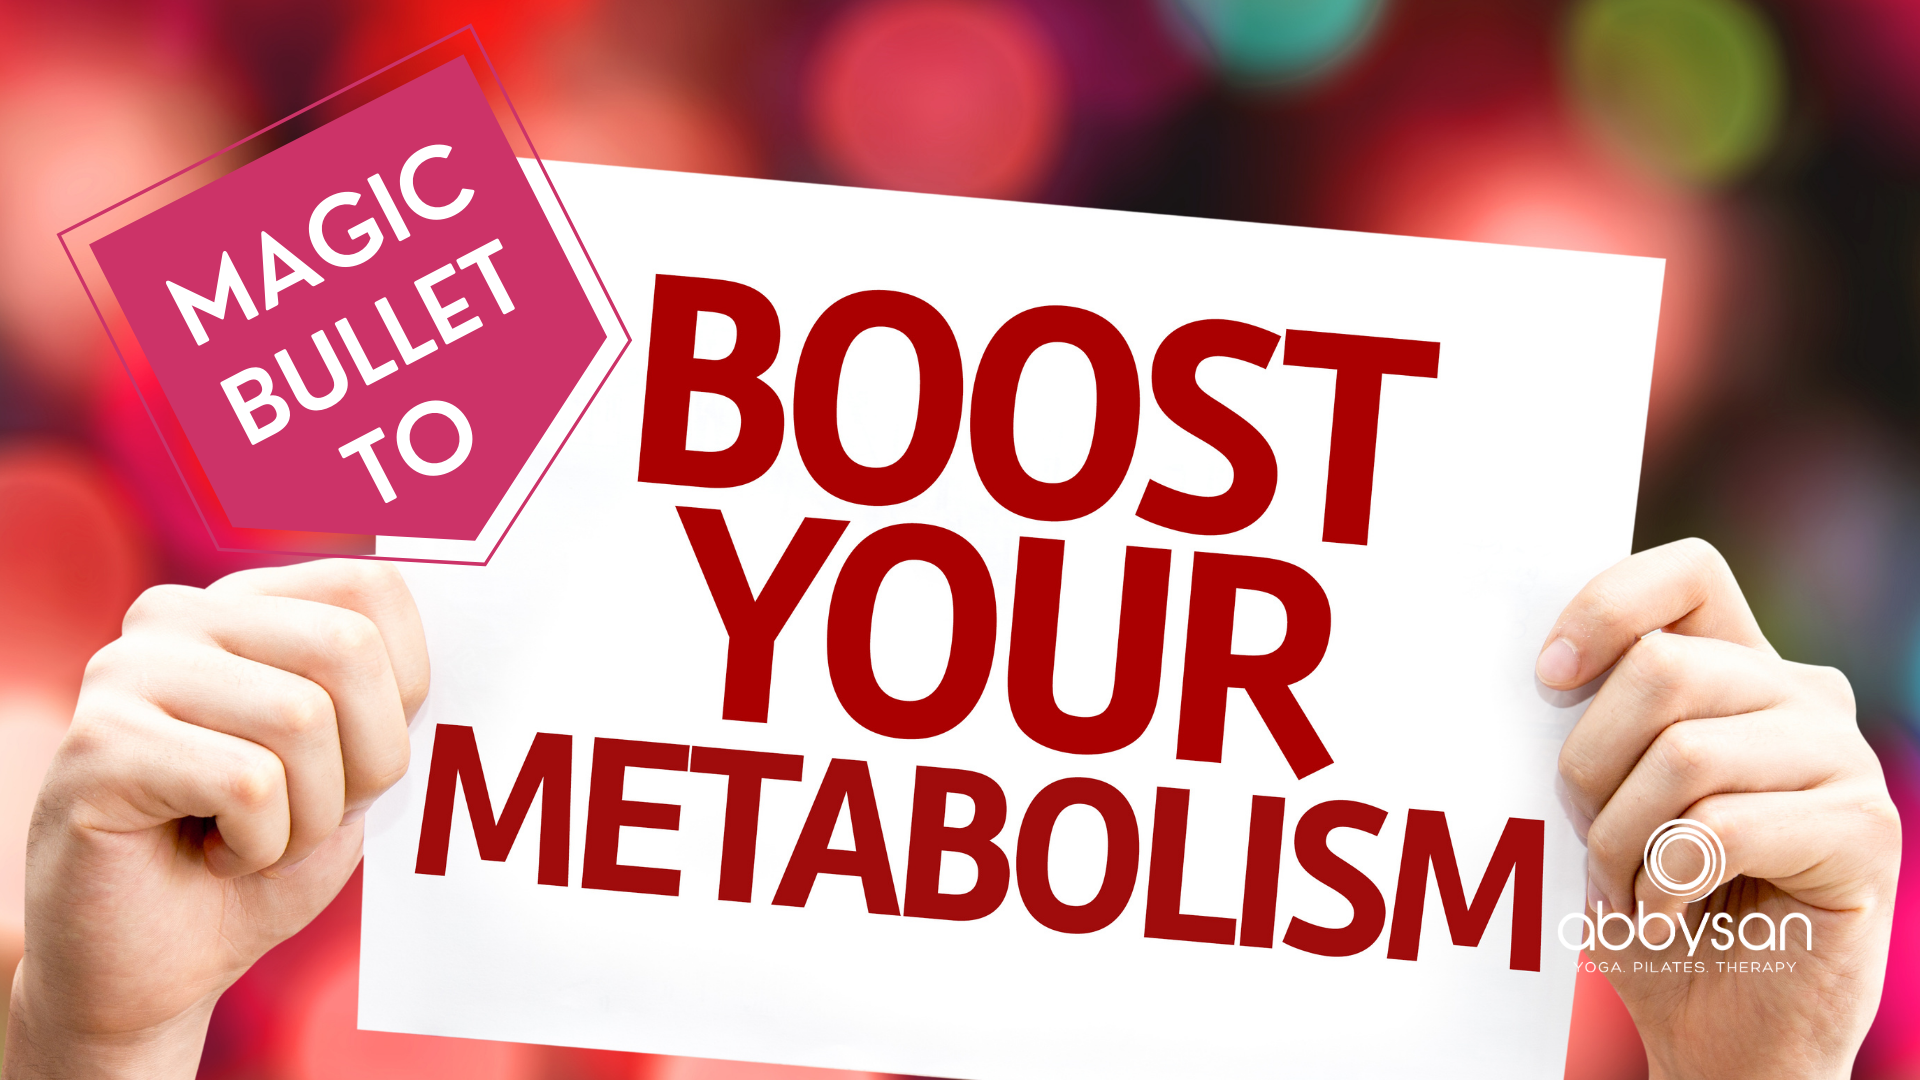 For Boosting Your Metabolism